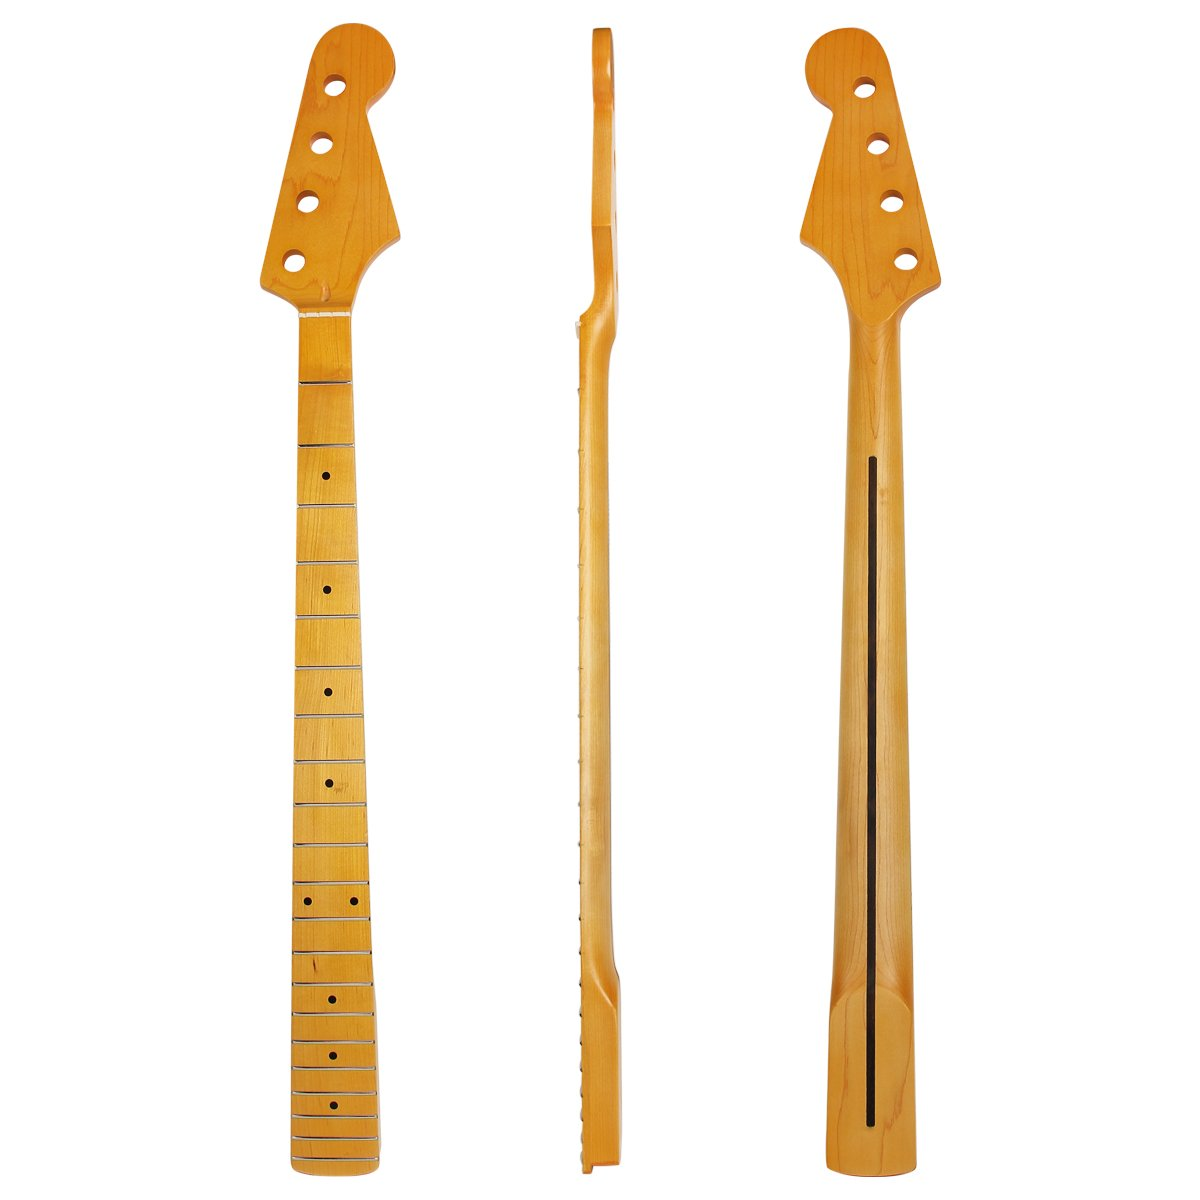 Electric Bass Neck For Similar Replacement Maple 21 Mr2 Fuse Box Fret Rosewood Back Inlay Bolt On Yellow Vintage Tint Satin Musical Instruments